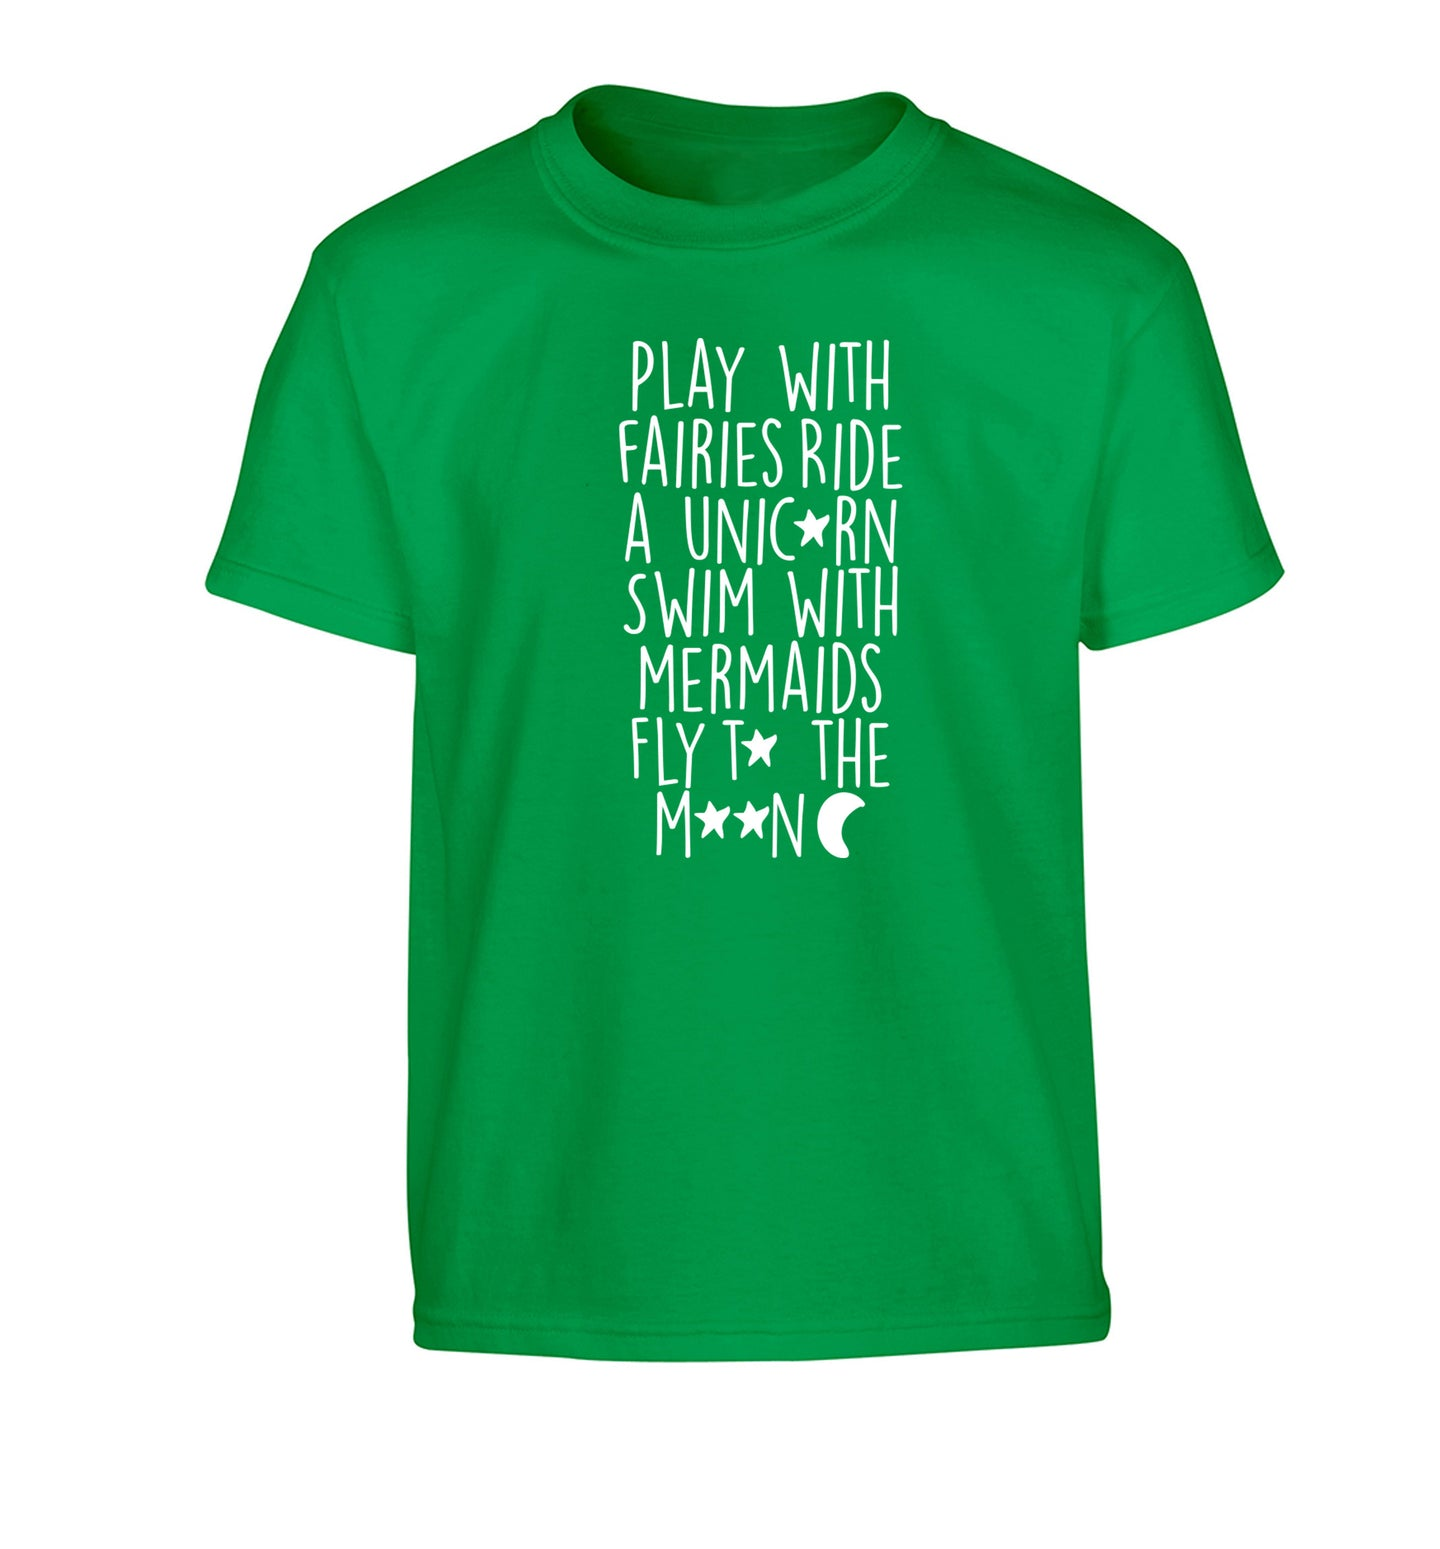 Play with fairies ride a unicorn swim with mermaids fly to the moon Children's green Tshirt 12-14 Years